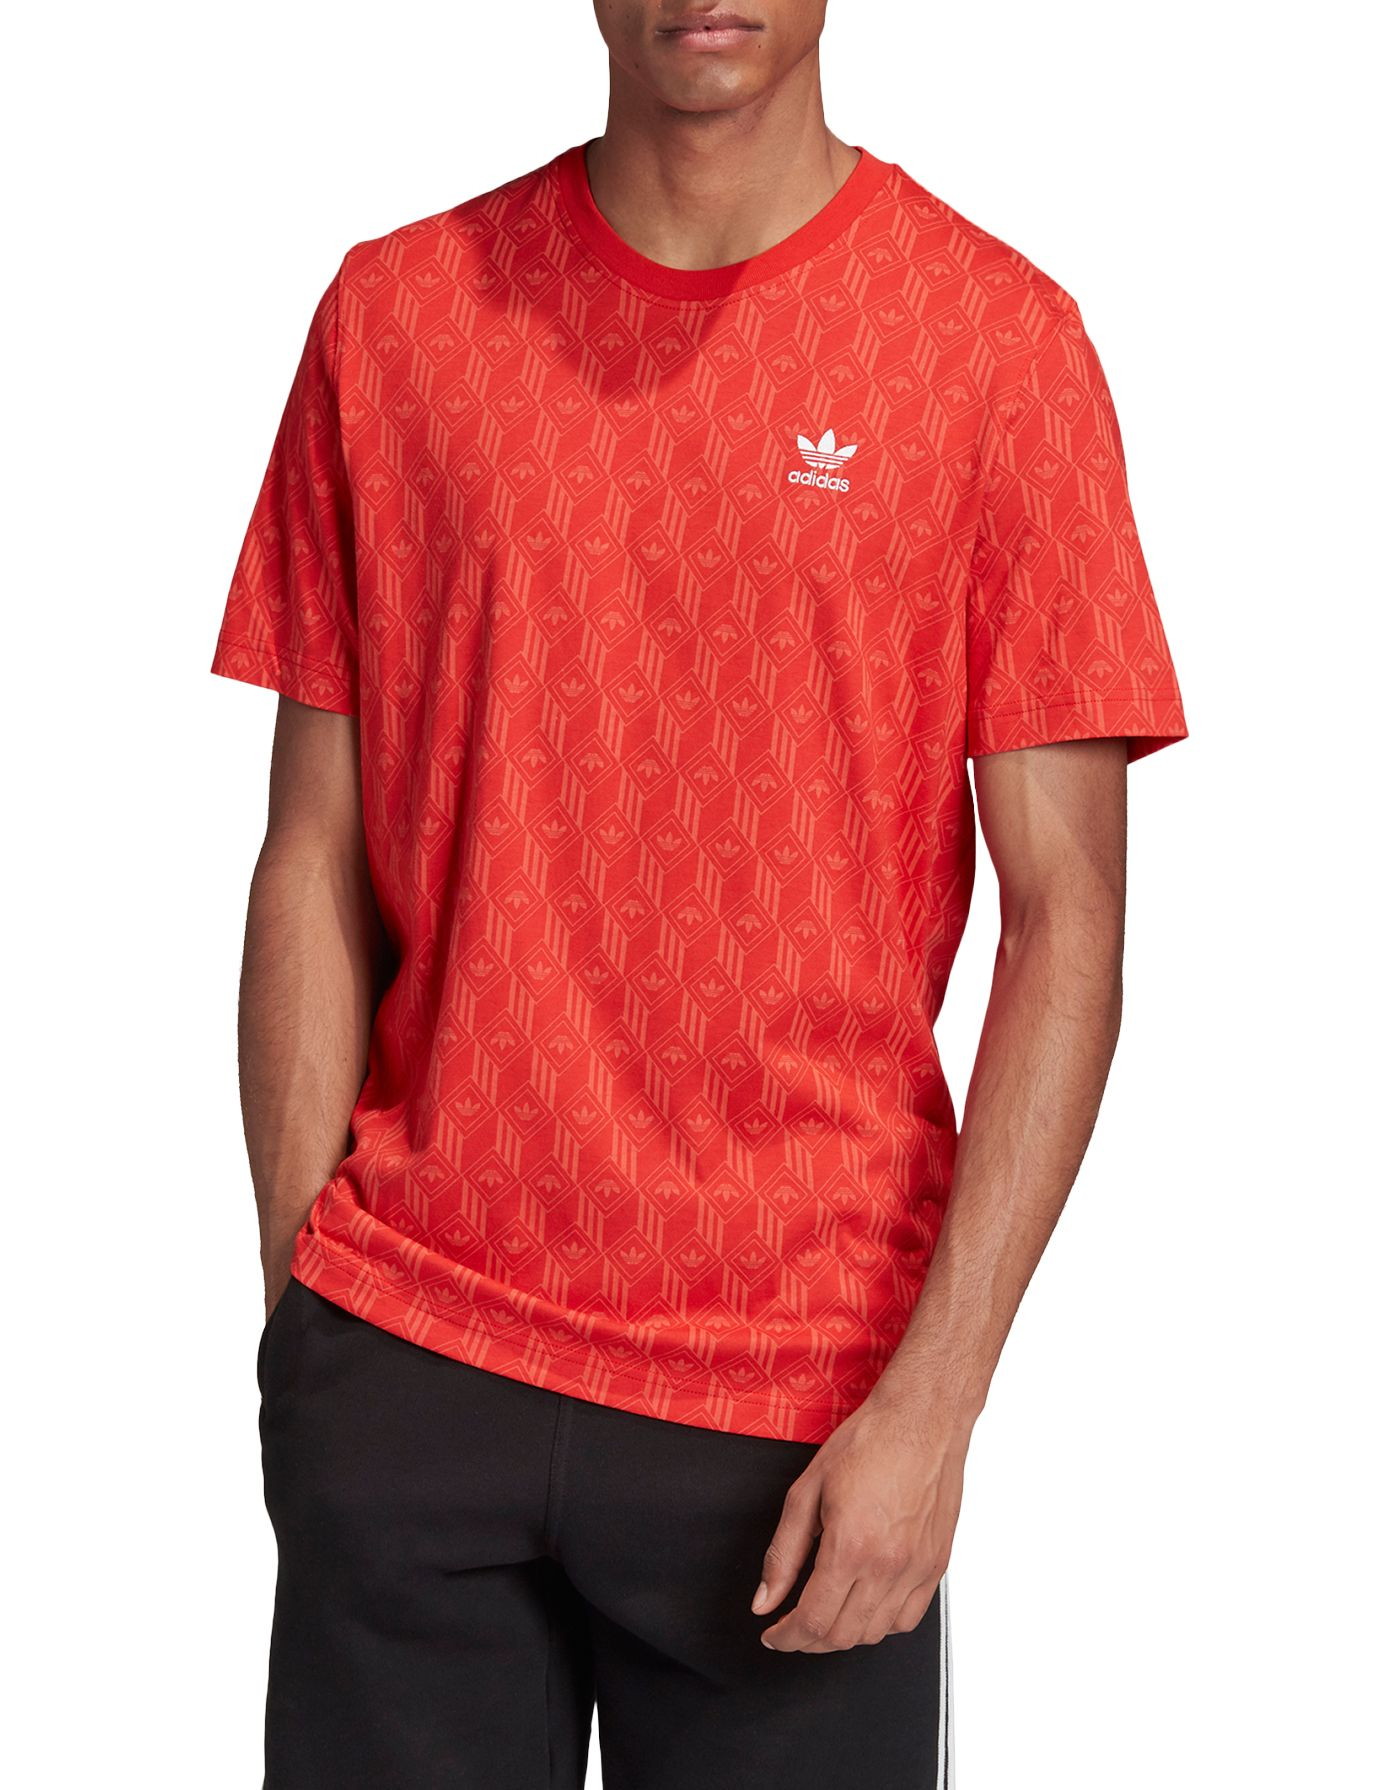 adidas Originals Men's Mono All Over Print T-Shirt